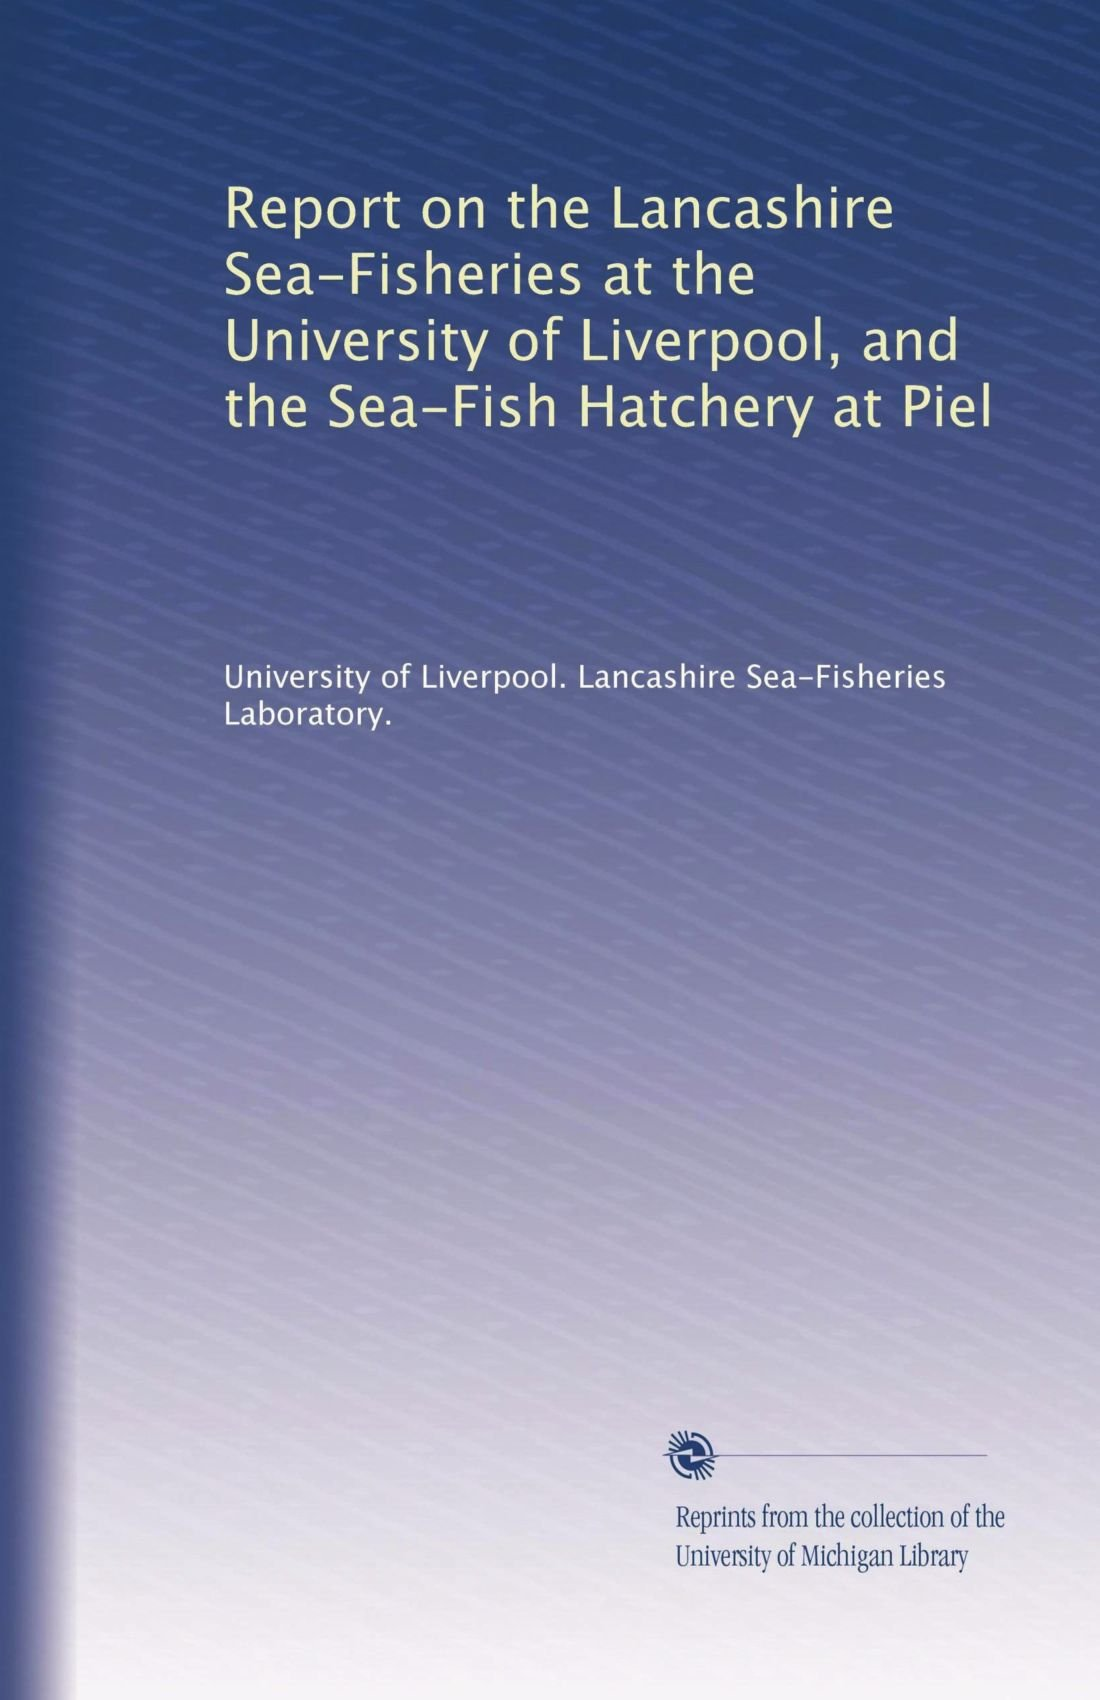 Read Online Report on the Lancashire Sea-Fisheries at the University of Liverpool, and the Sea-Fish Hatchery at Piel PDF